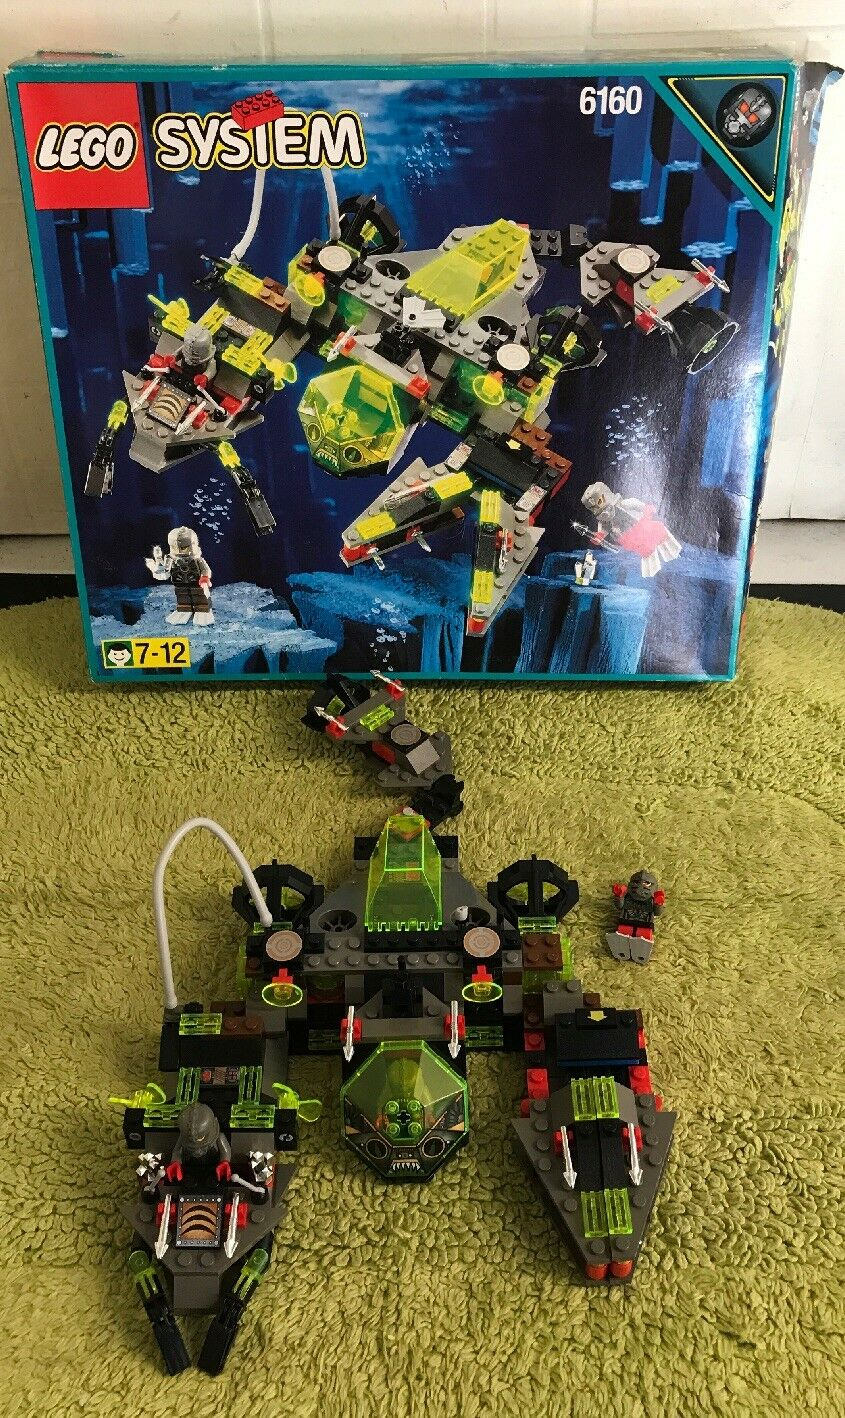 Lego system - 6160 - complete with instructions and boxed